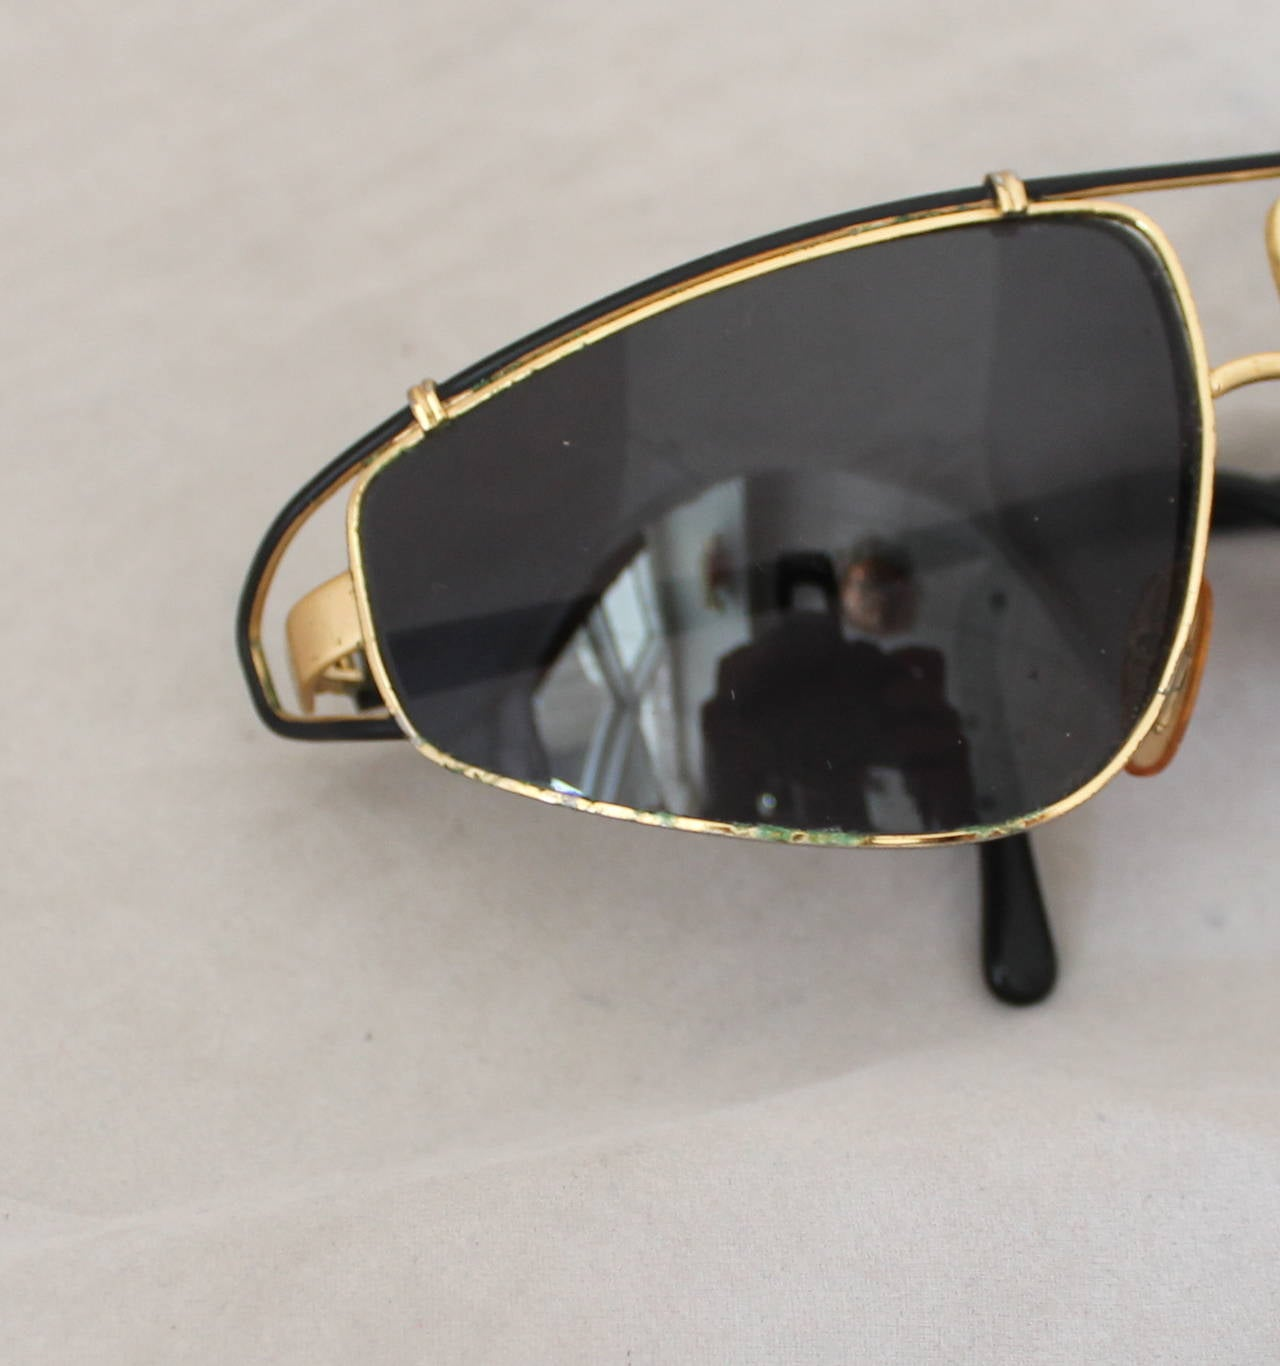 Versace 1980's Vintage Black & Gold Geometric Aviator Sunglasses 7